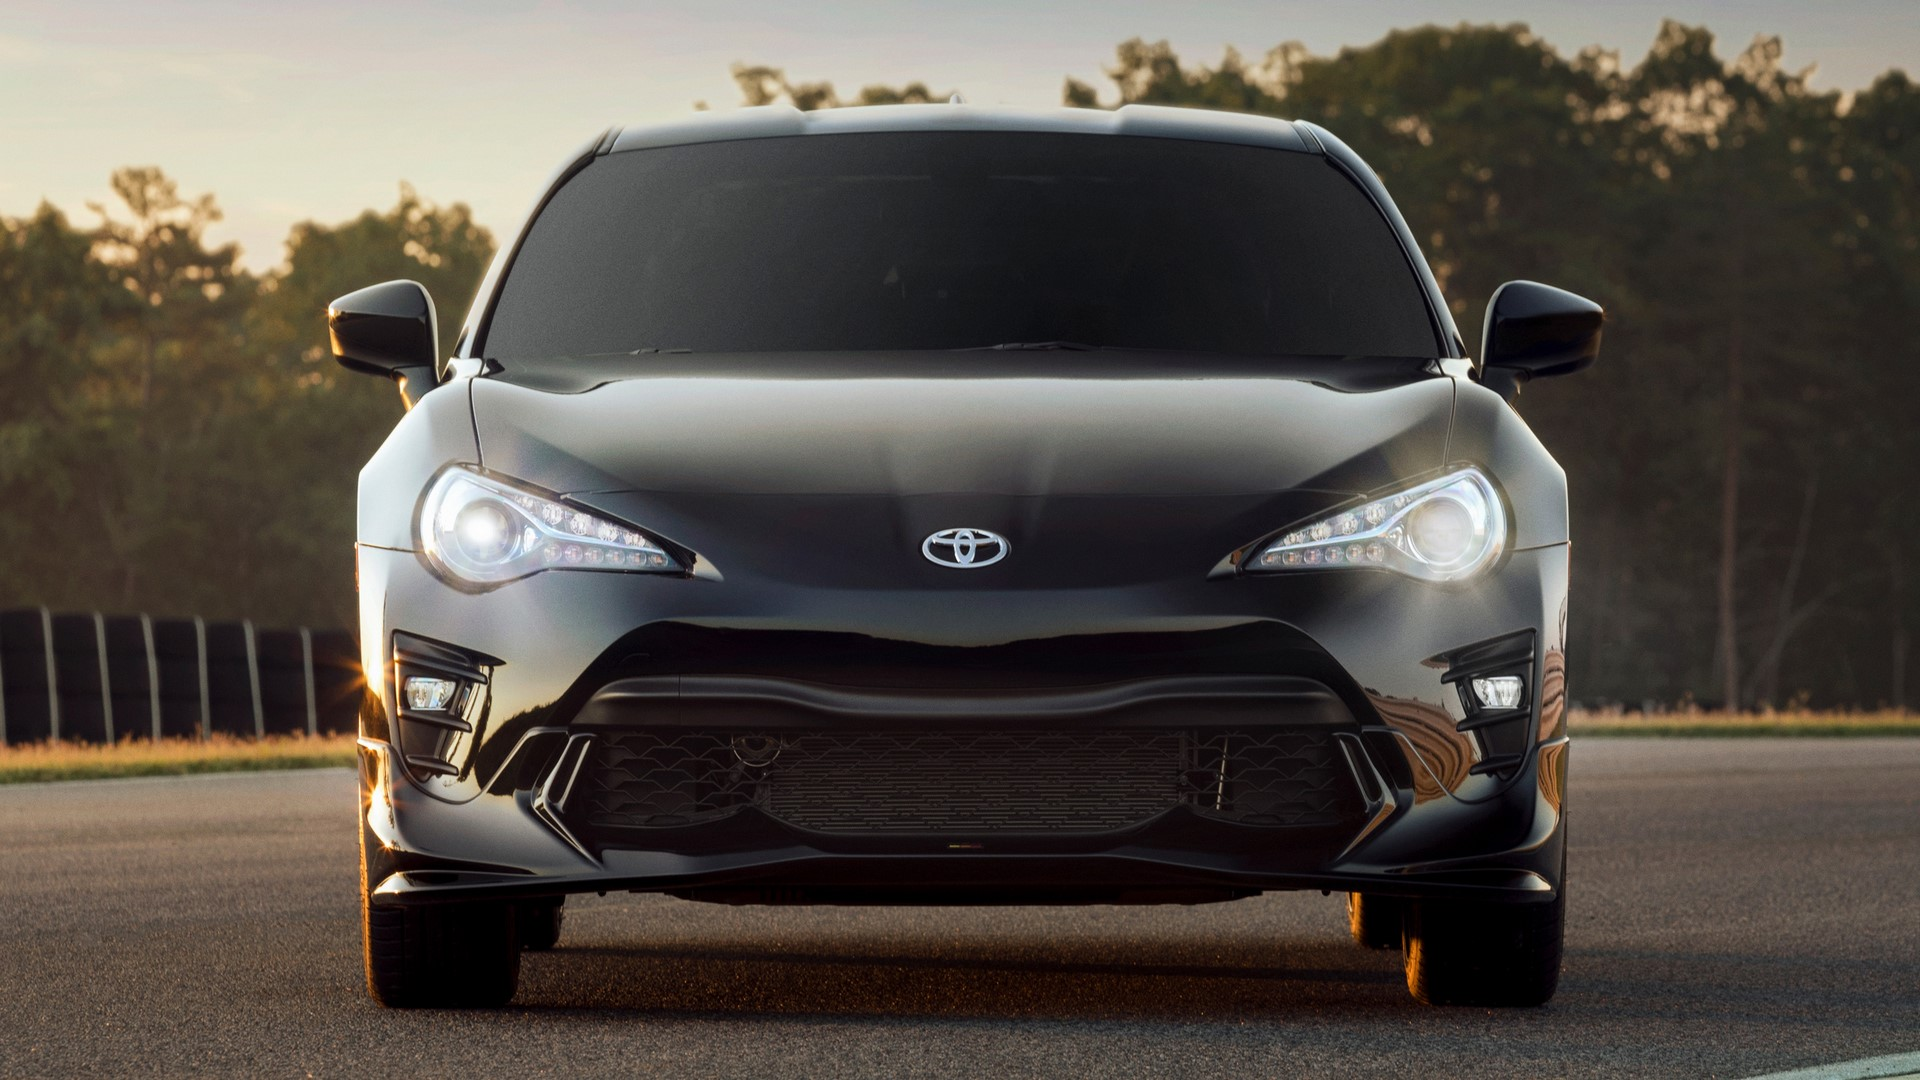 2019-toyota-86-trd-special-edition-28-1